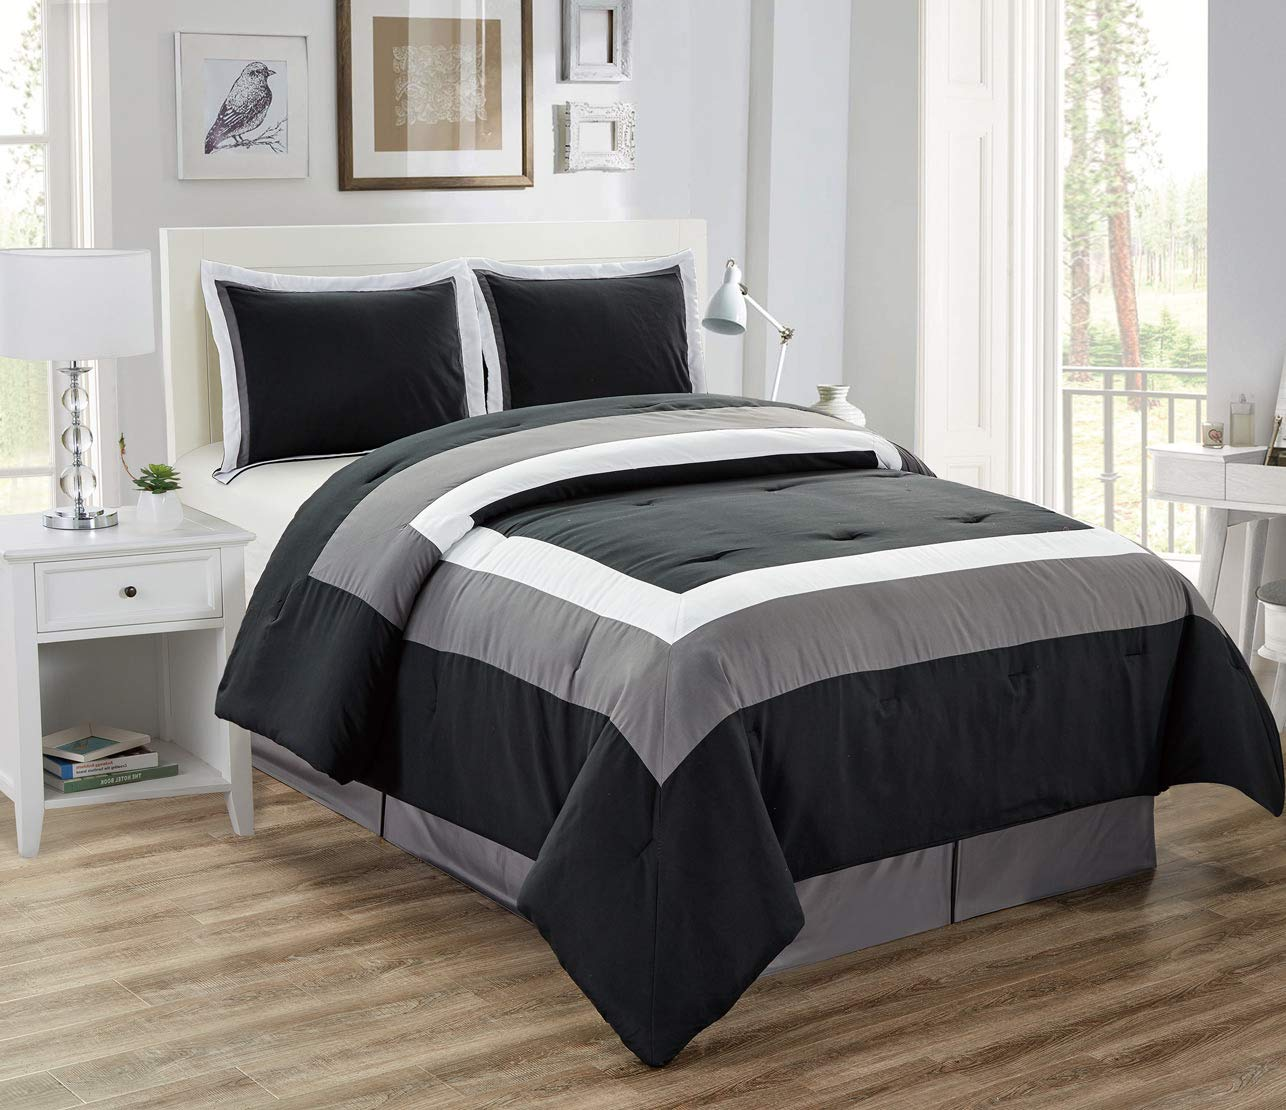 4-Piece All-Season Down Alternative Quilted Color Block Full Size Comforter Set- Hypoallergenic Summer Cooling Ultra Soft Bedding- Plush Microfiber Fill - Machine Washable (Black, Grey, White)